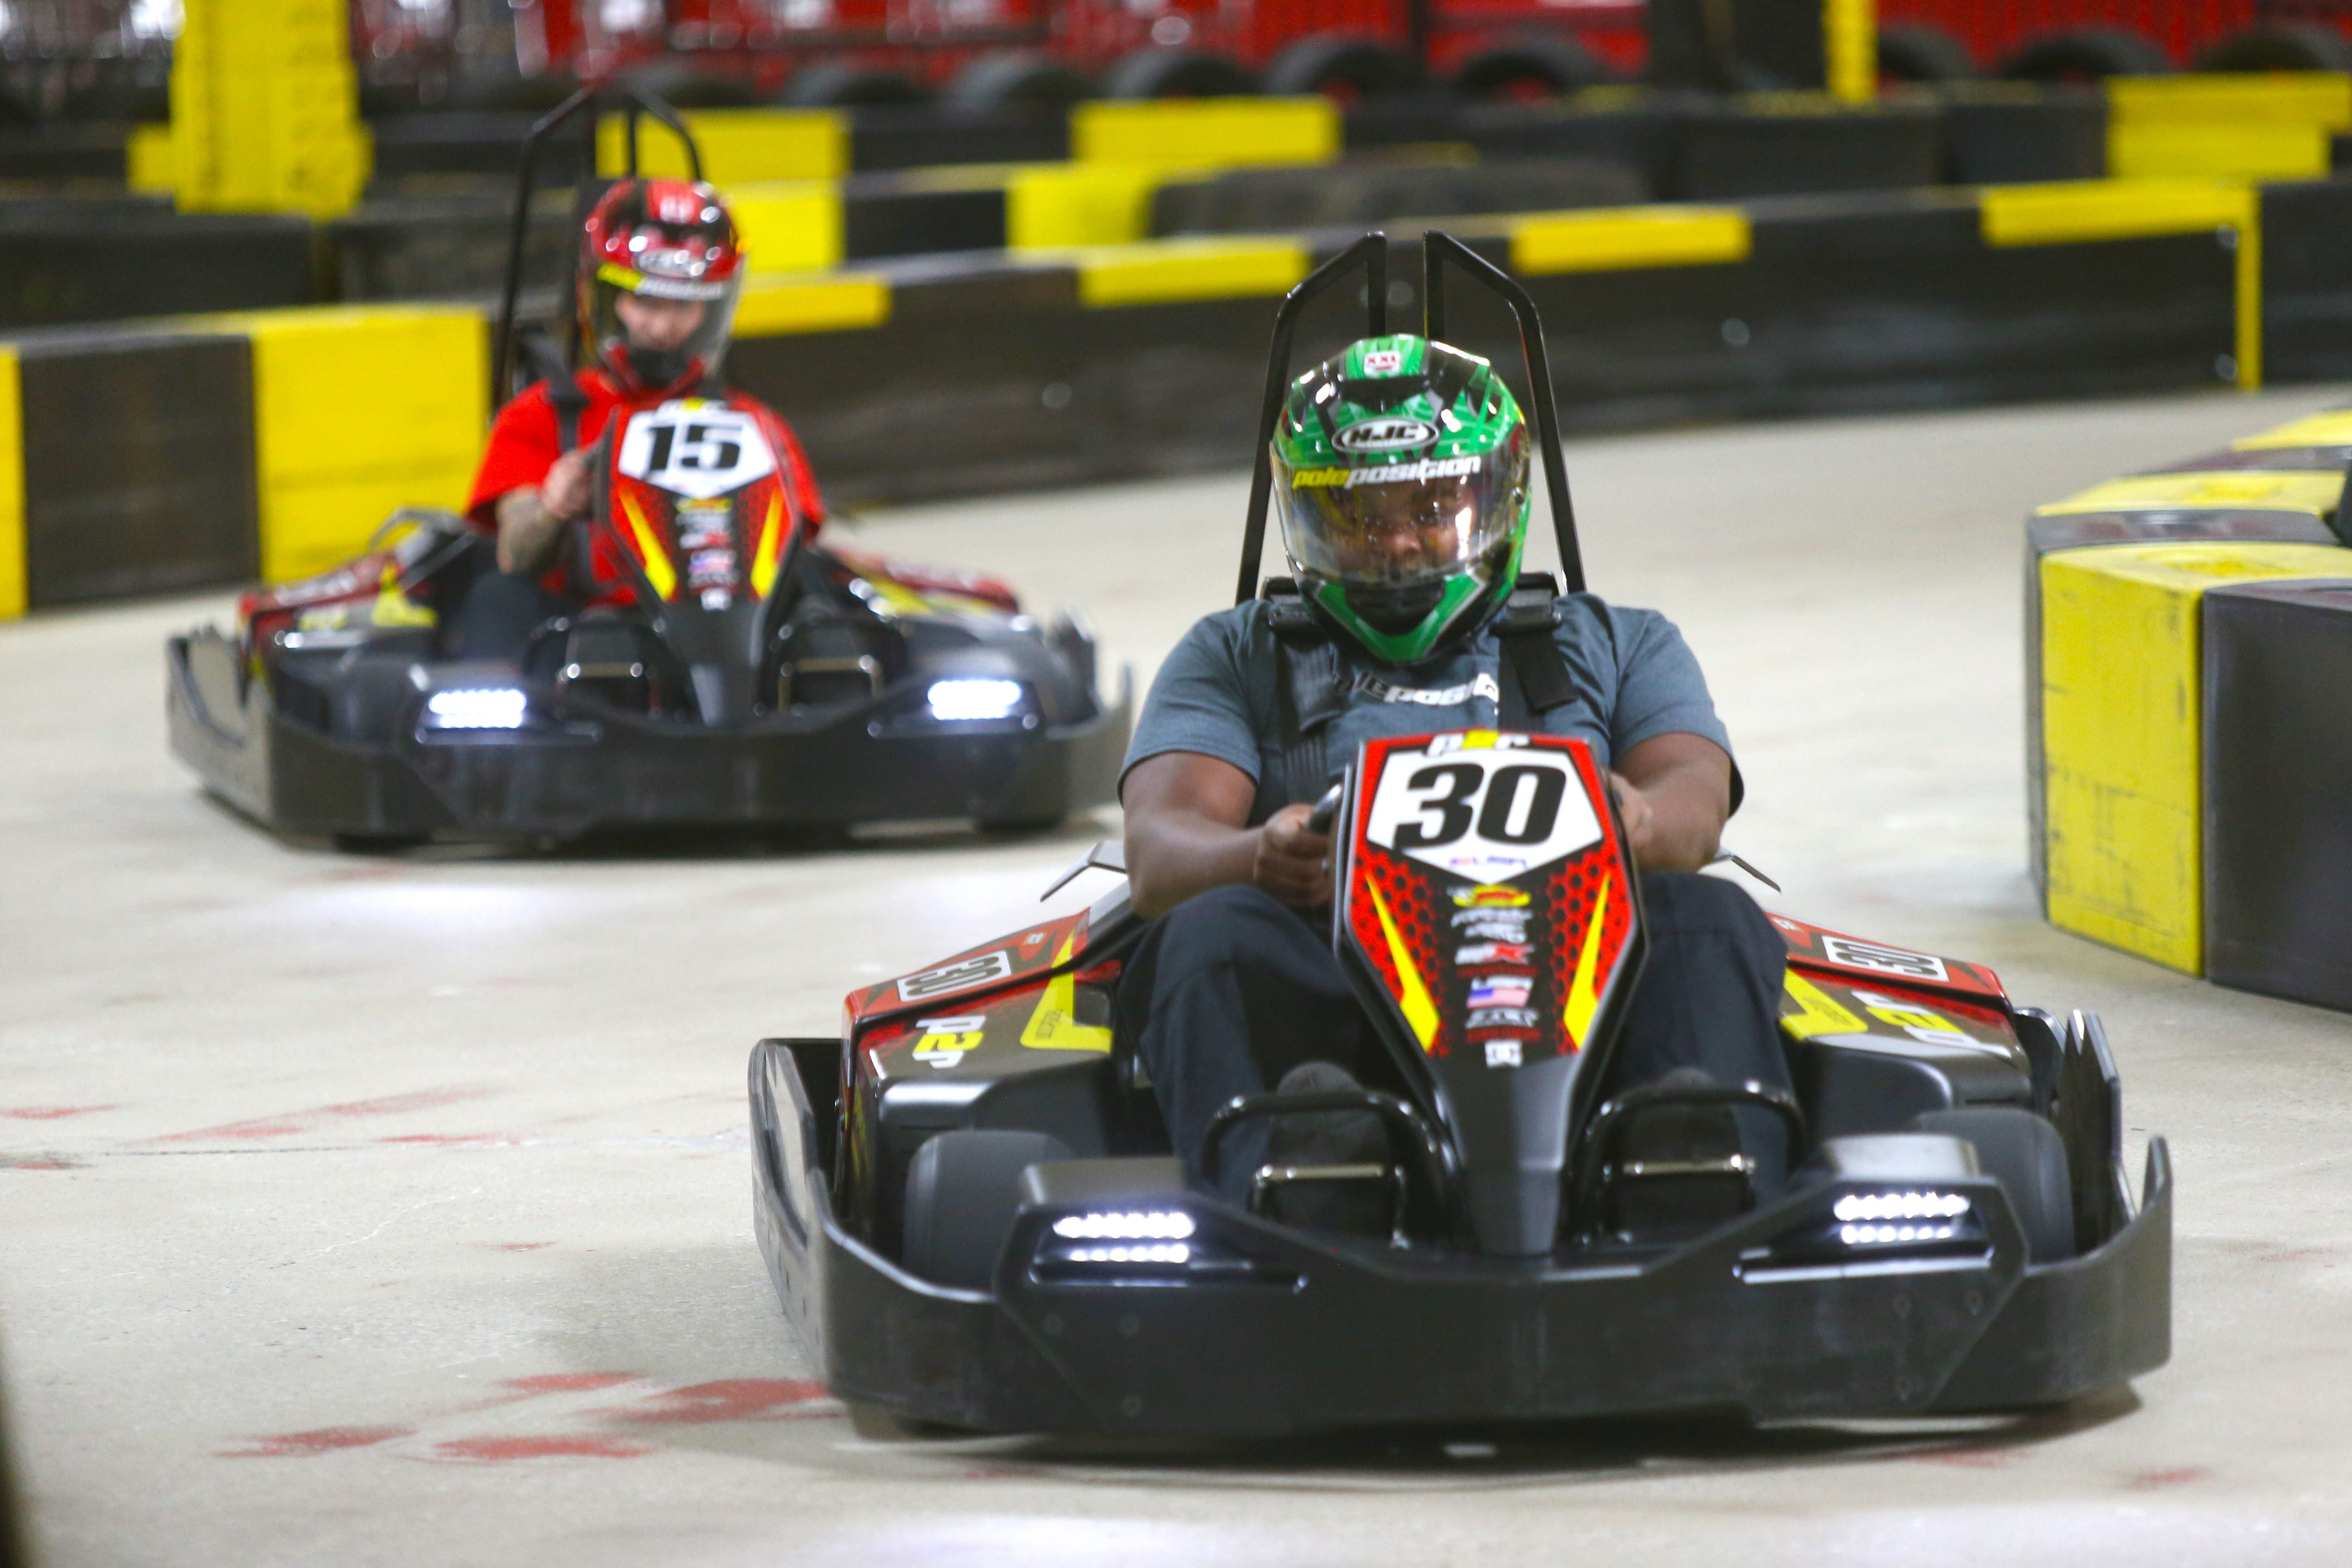 Go-kart rides at Pole Position Raceway, which opens today at Walden Galleria cost $23 and can be enjoyed by anyone 4 feet or taller.